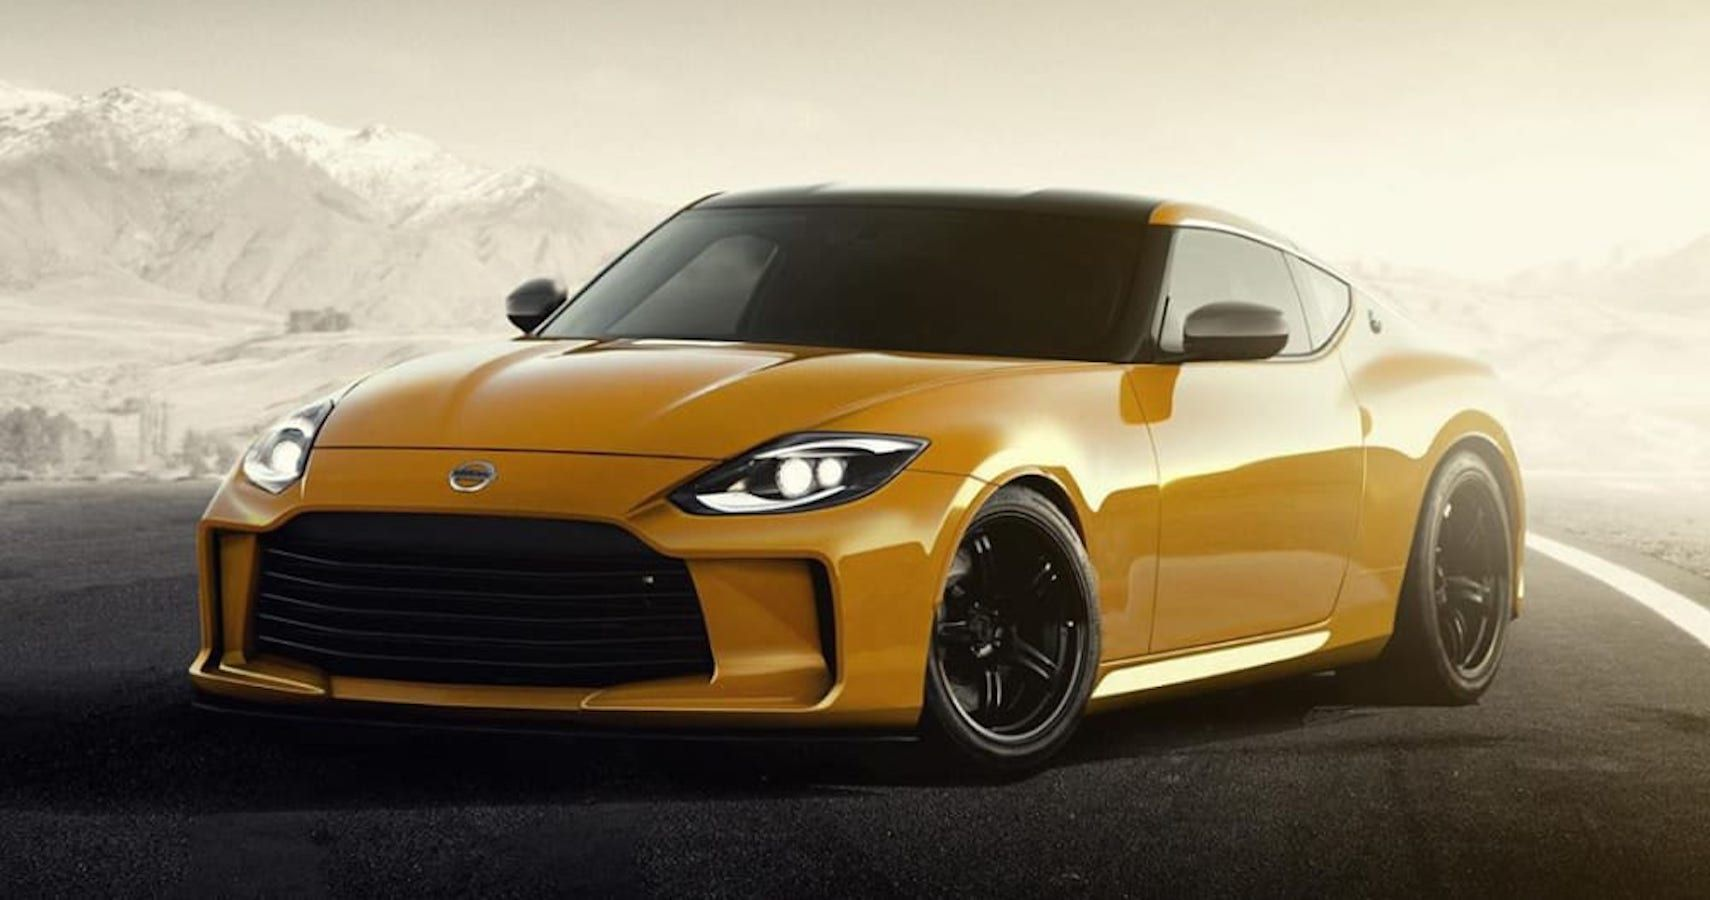 Nissan 400Z: What We Know 24 Hours Before Its Digital Reveal